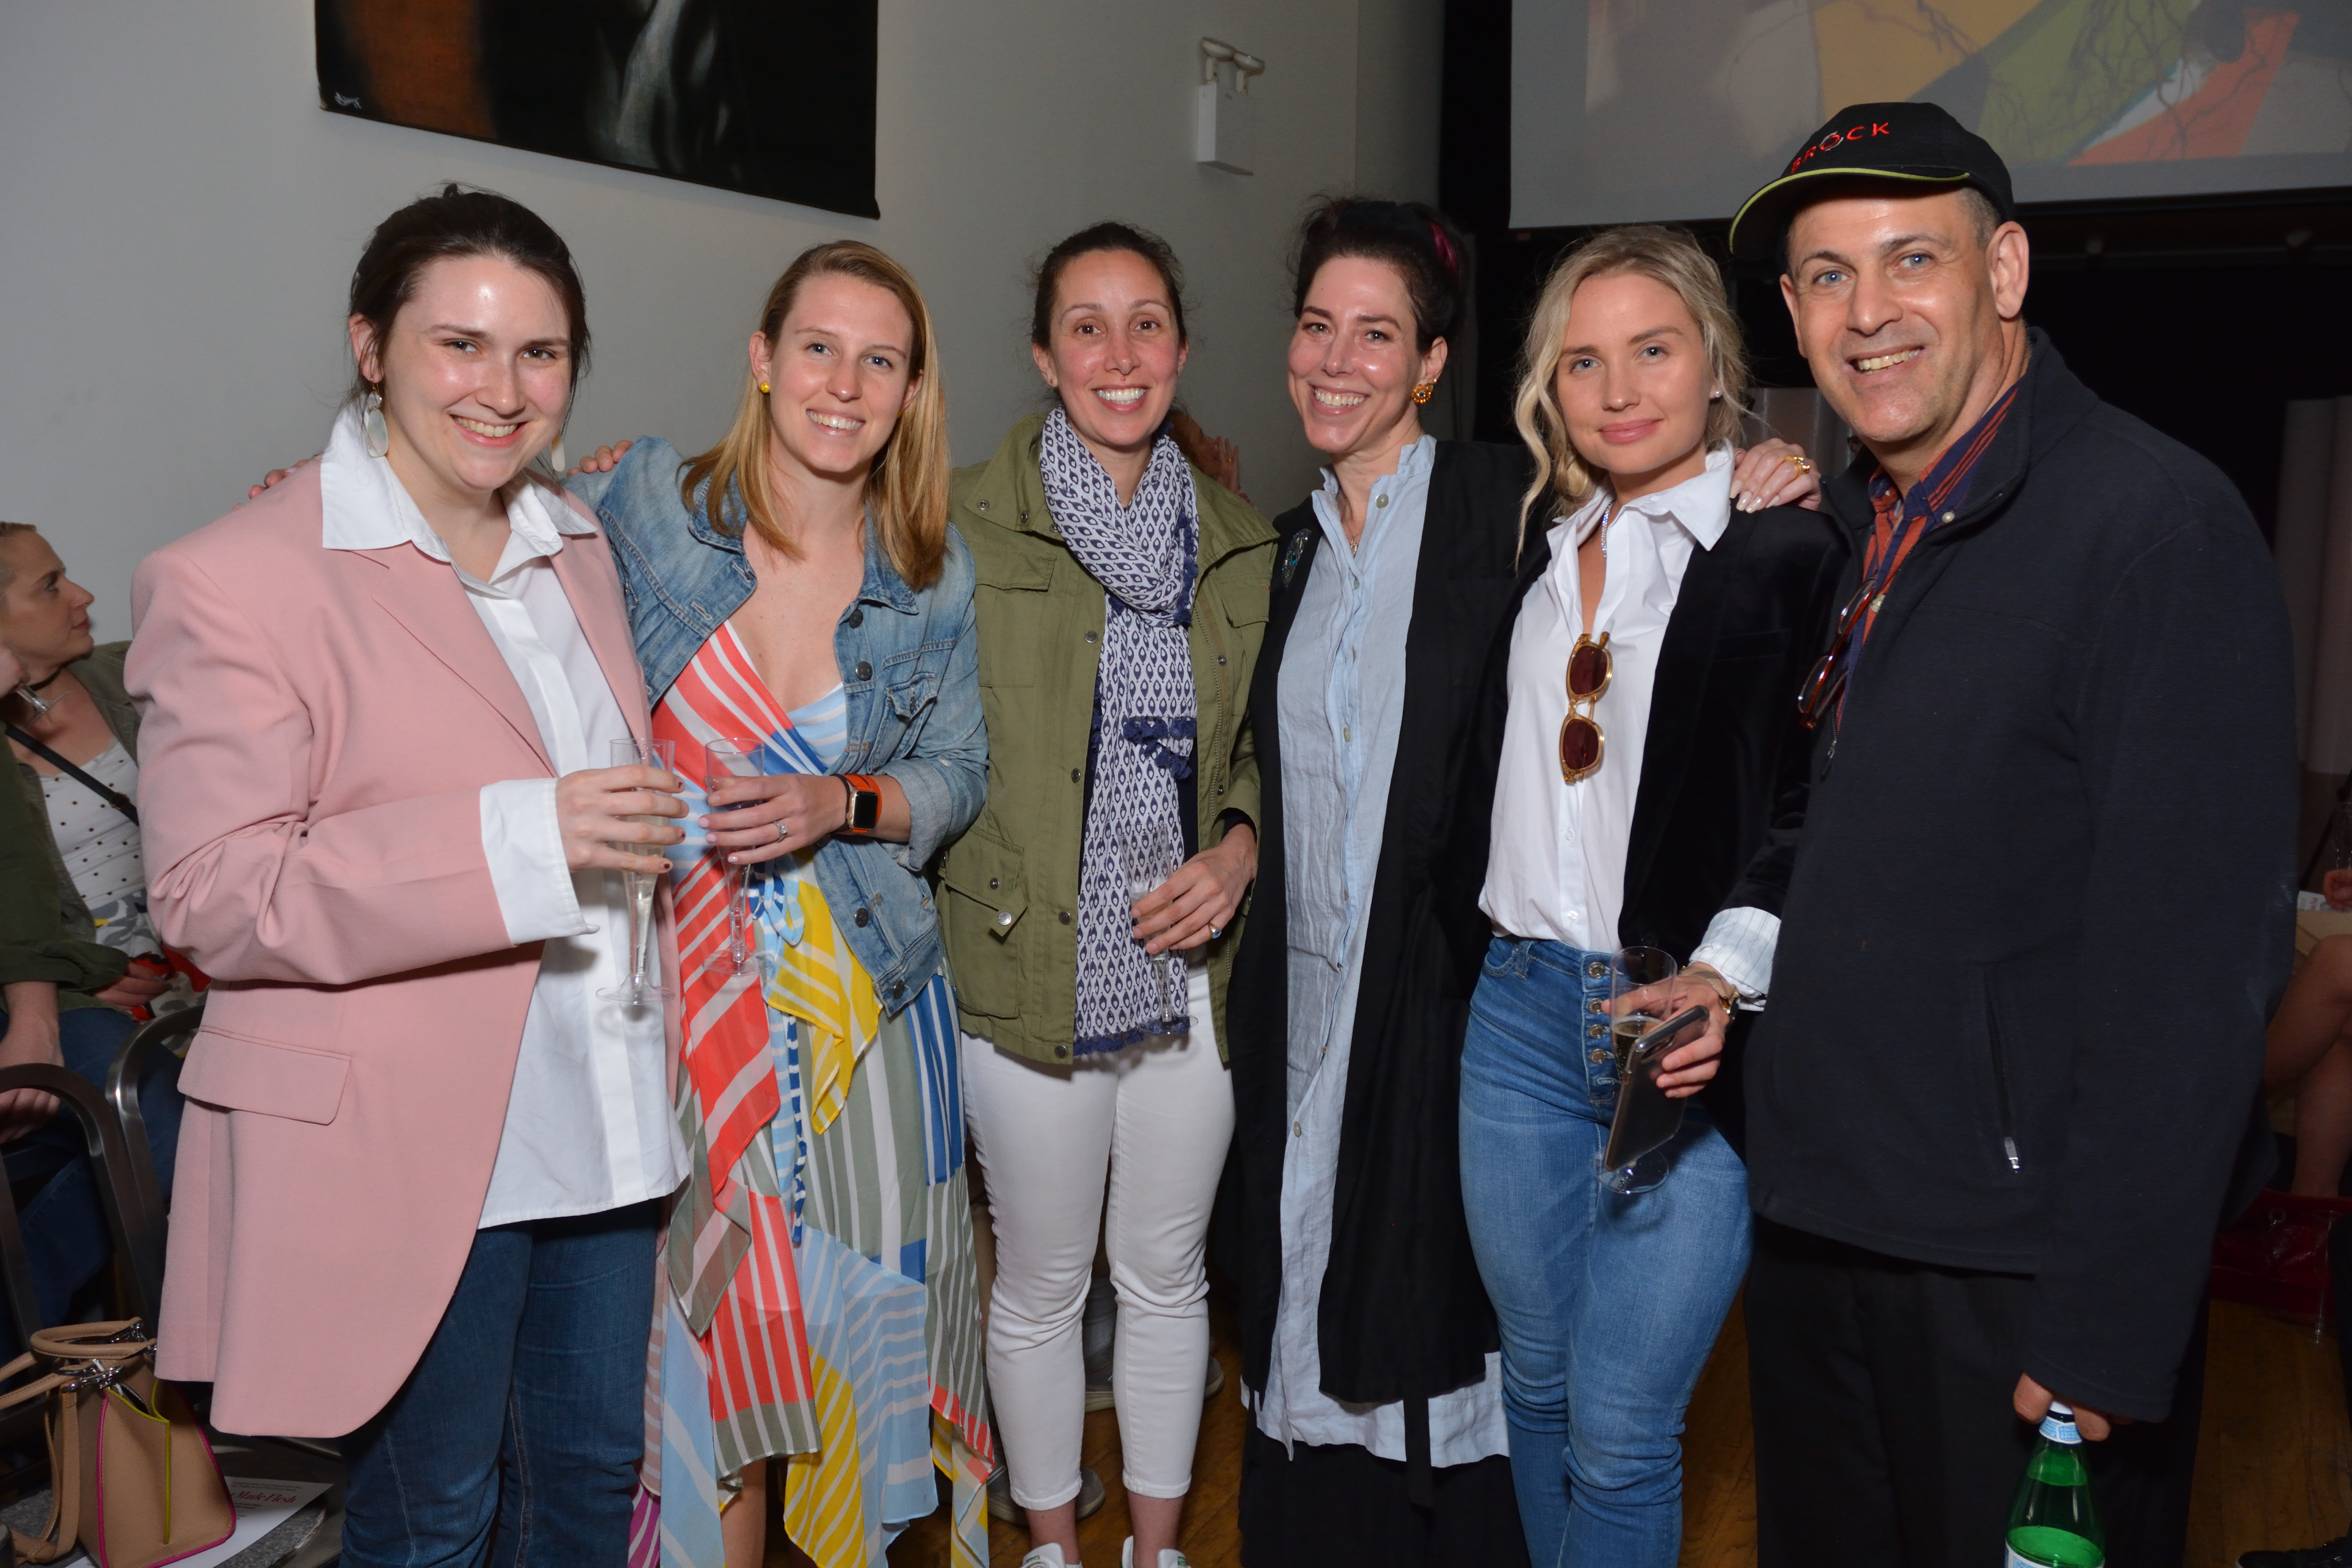 Leigh Peterson, Kelli Cross, and Claire Robertiello of Sotheby's Preferred with Producers Amanda Qui